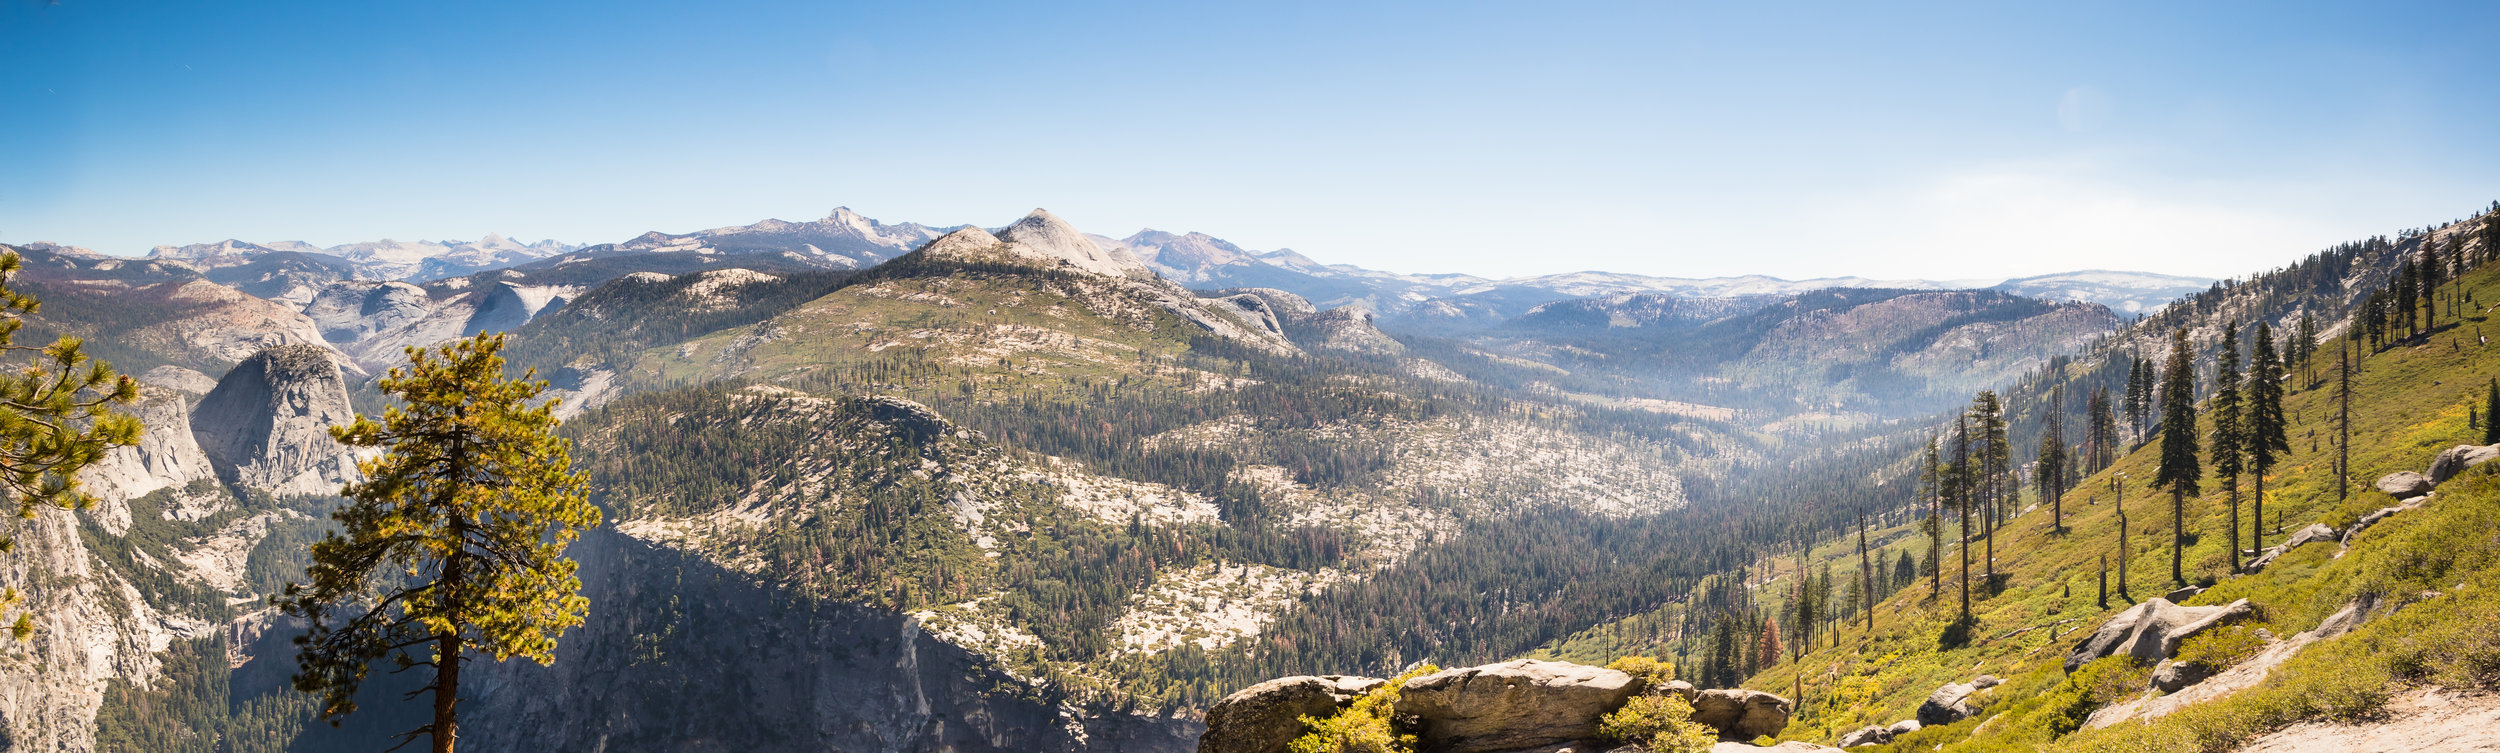 Yosemite Valley and Illilouette Valley from Washburn Point, Yosemite National Park, CA.